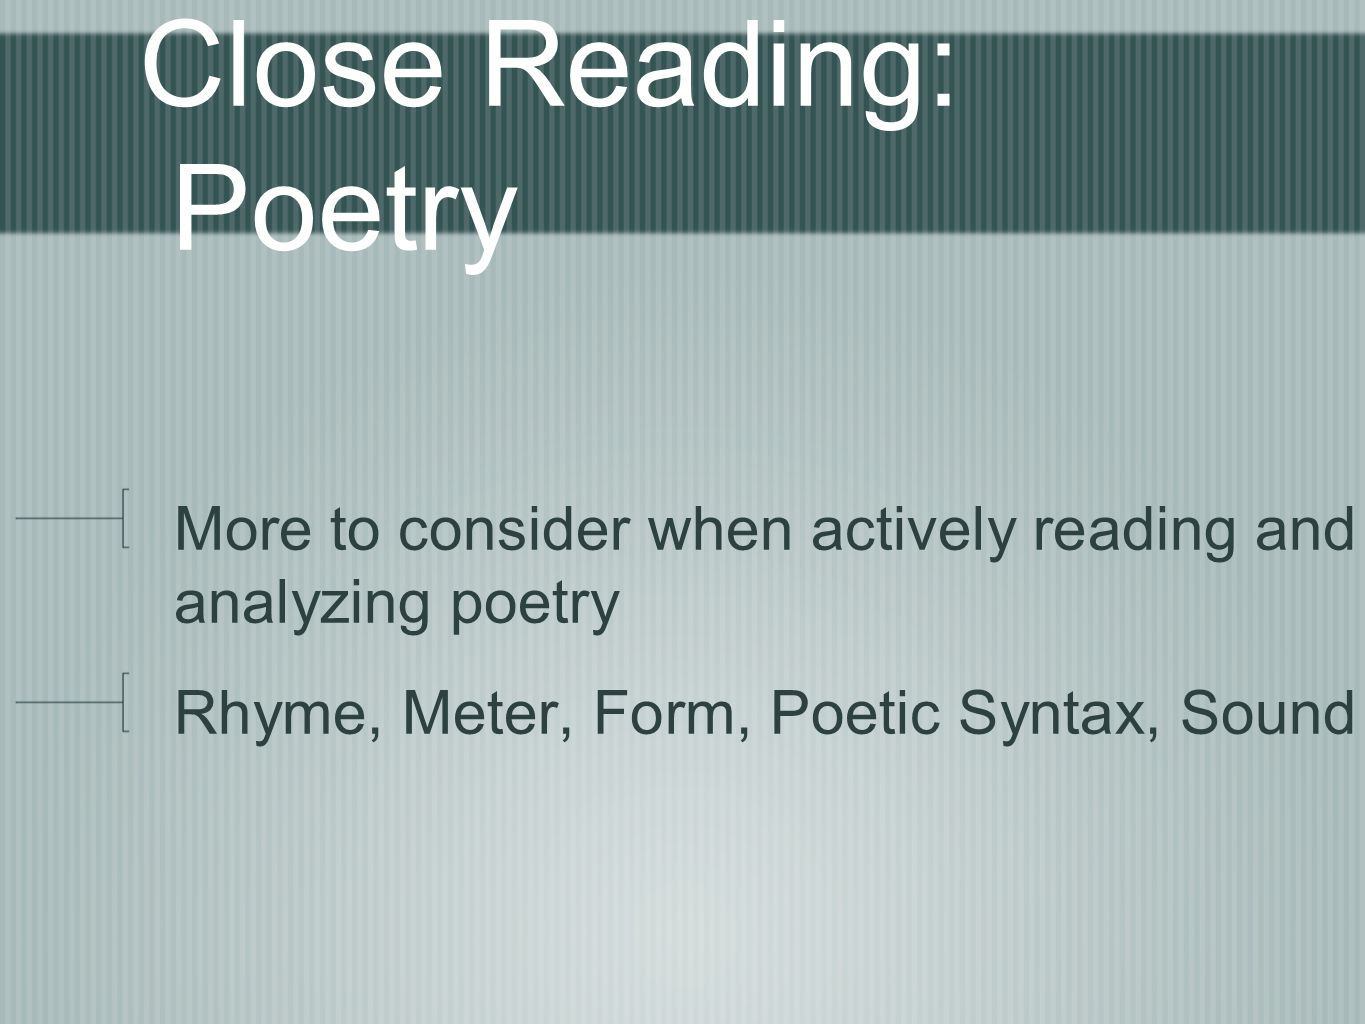 Close Reading: Poetry More to consider when actively reading and analyzing poetry.